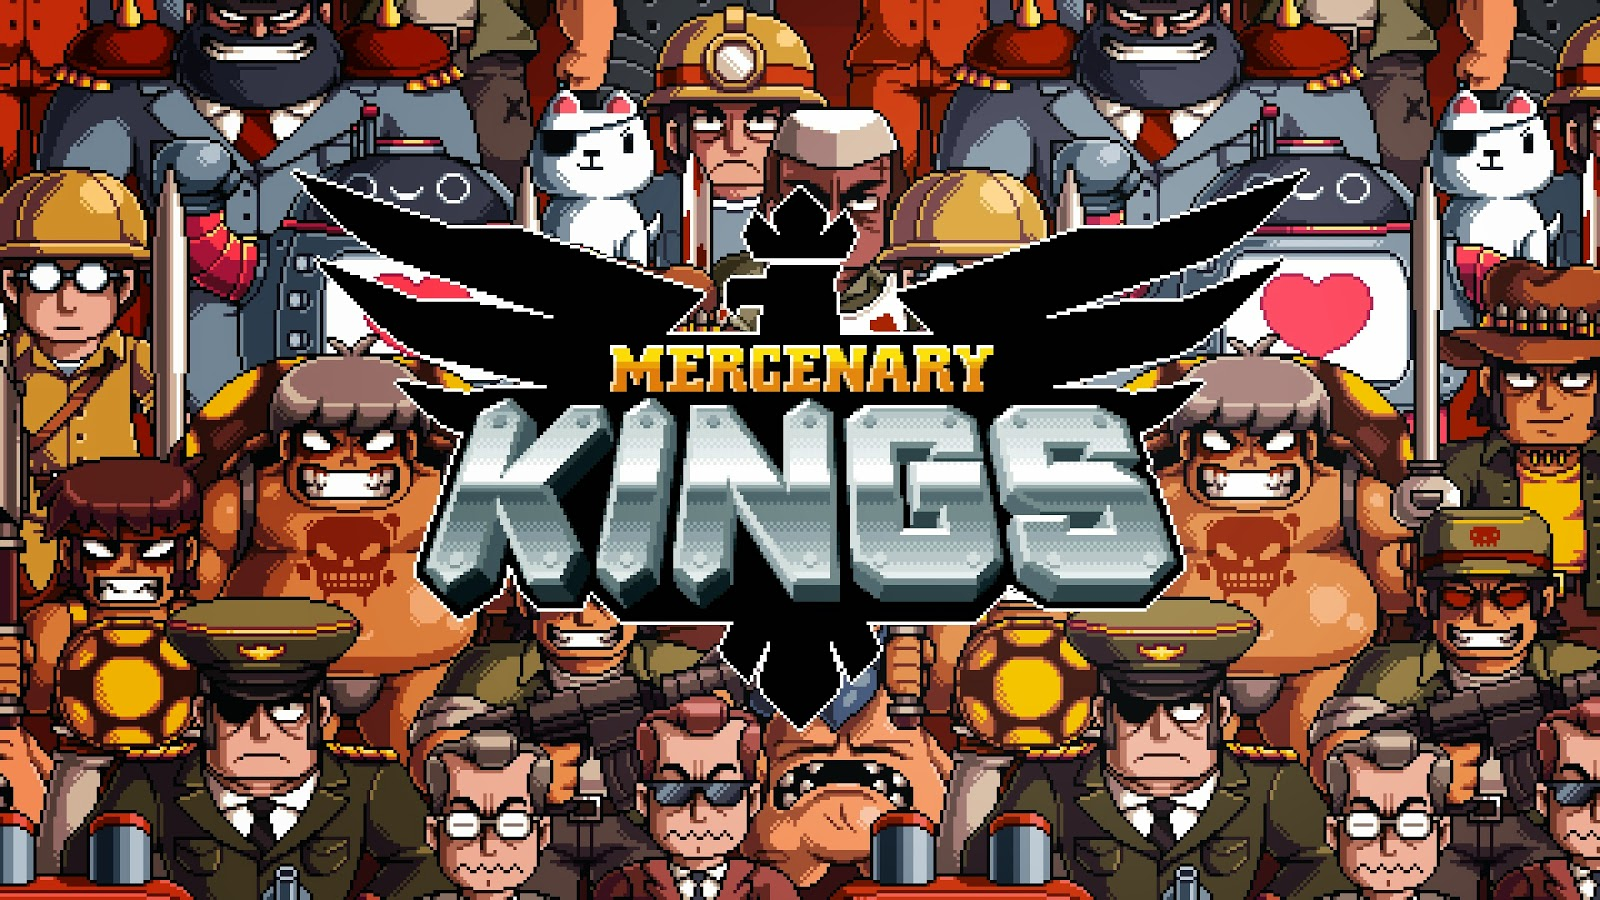 Mercenary kings matchmaking